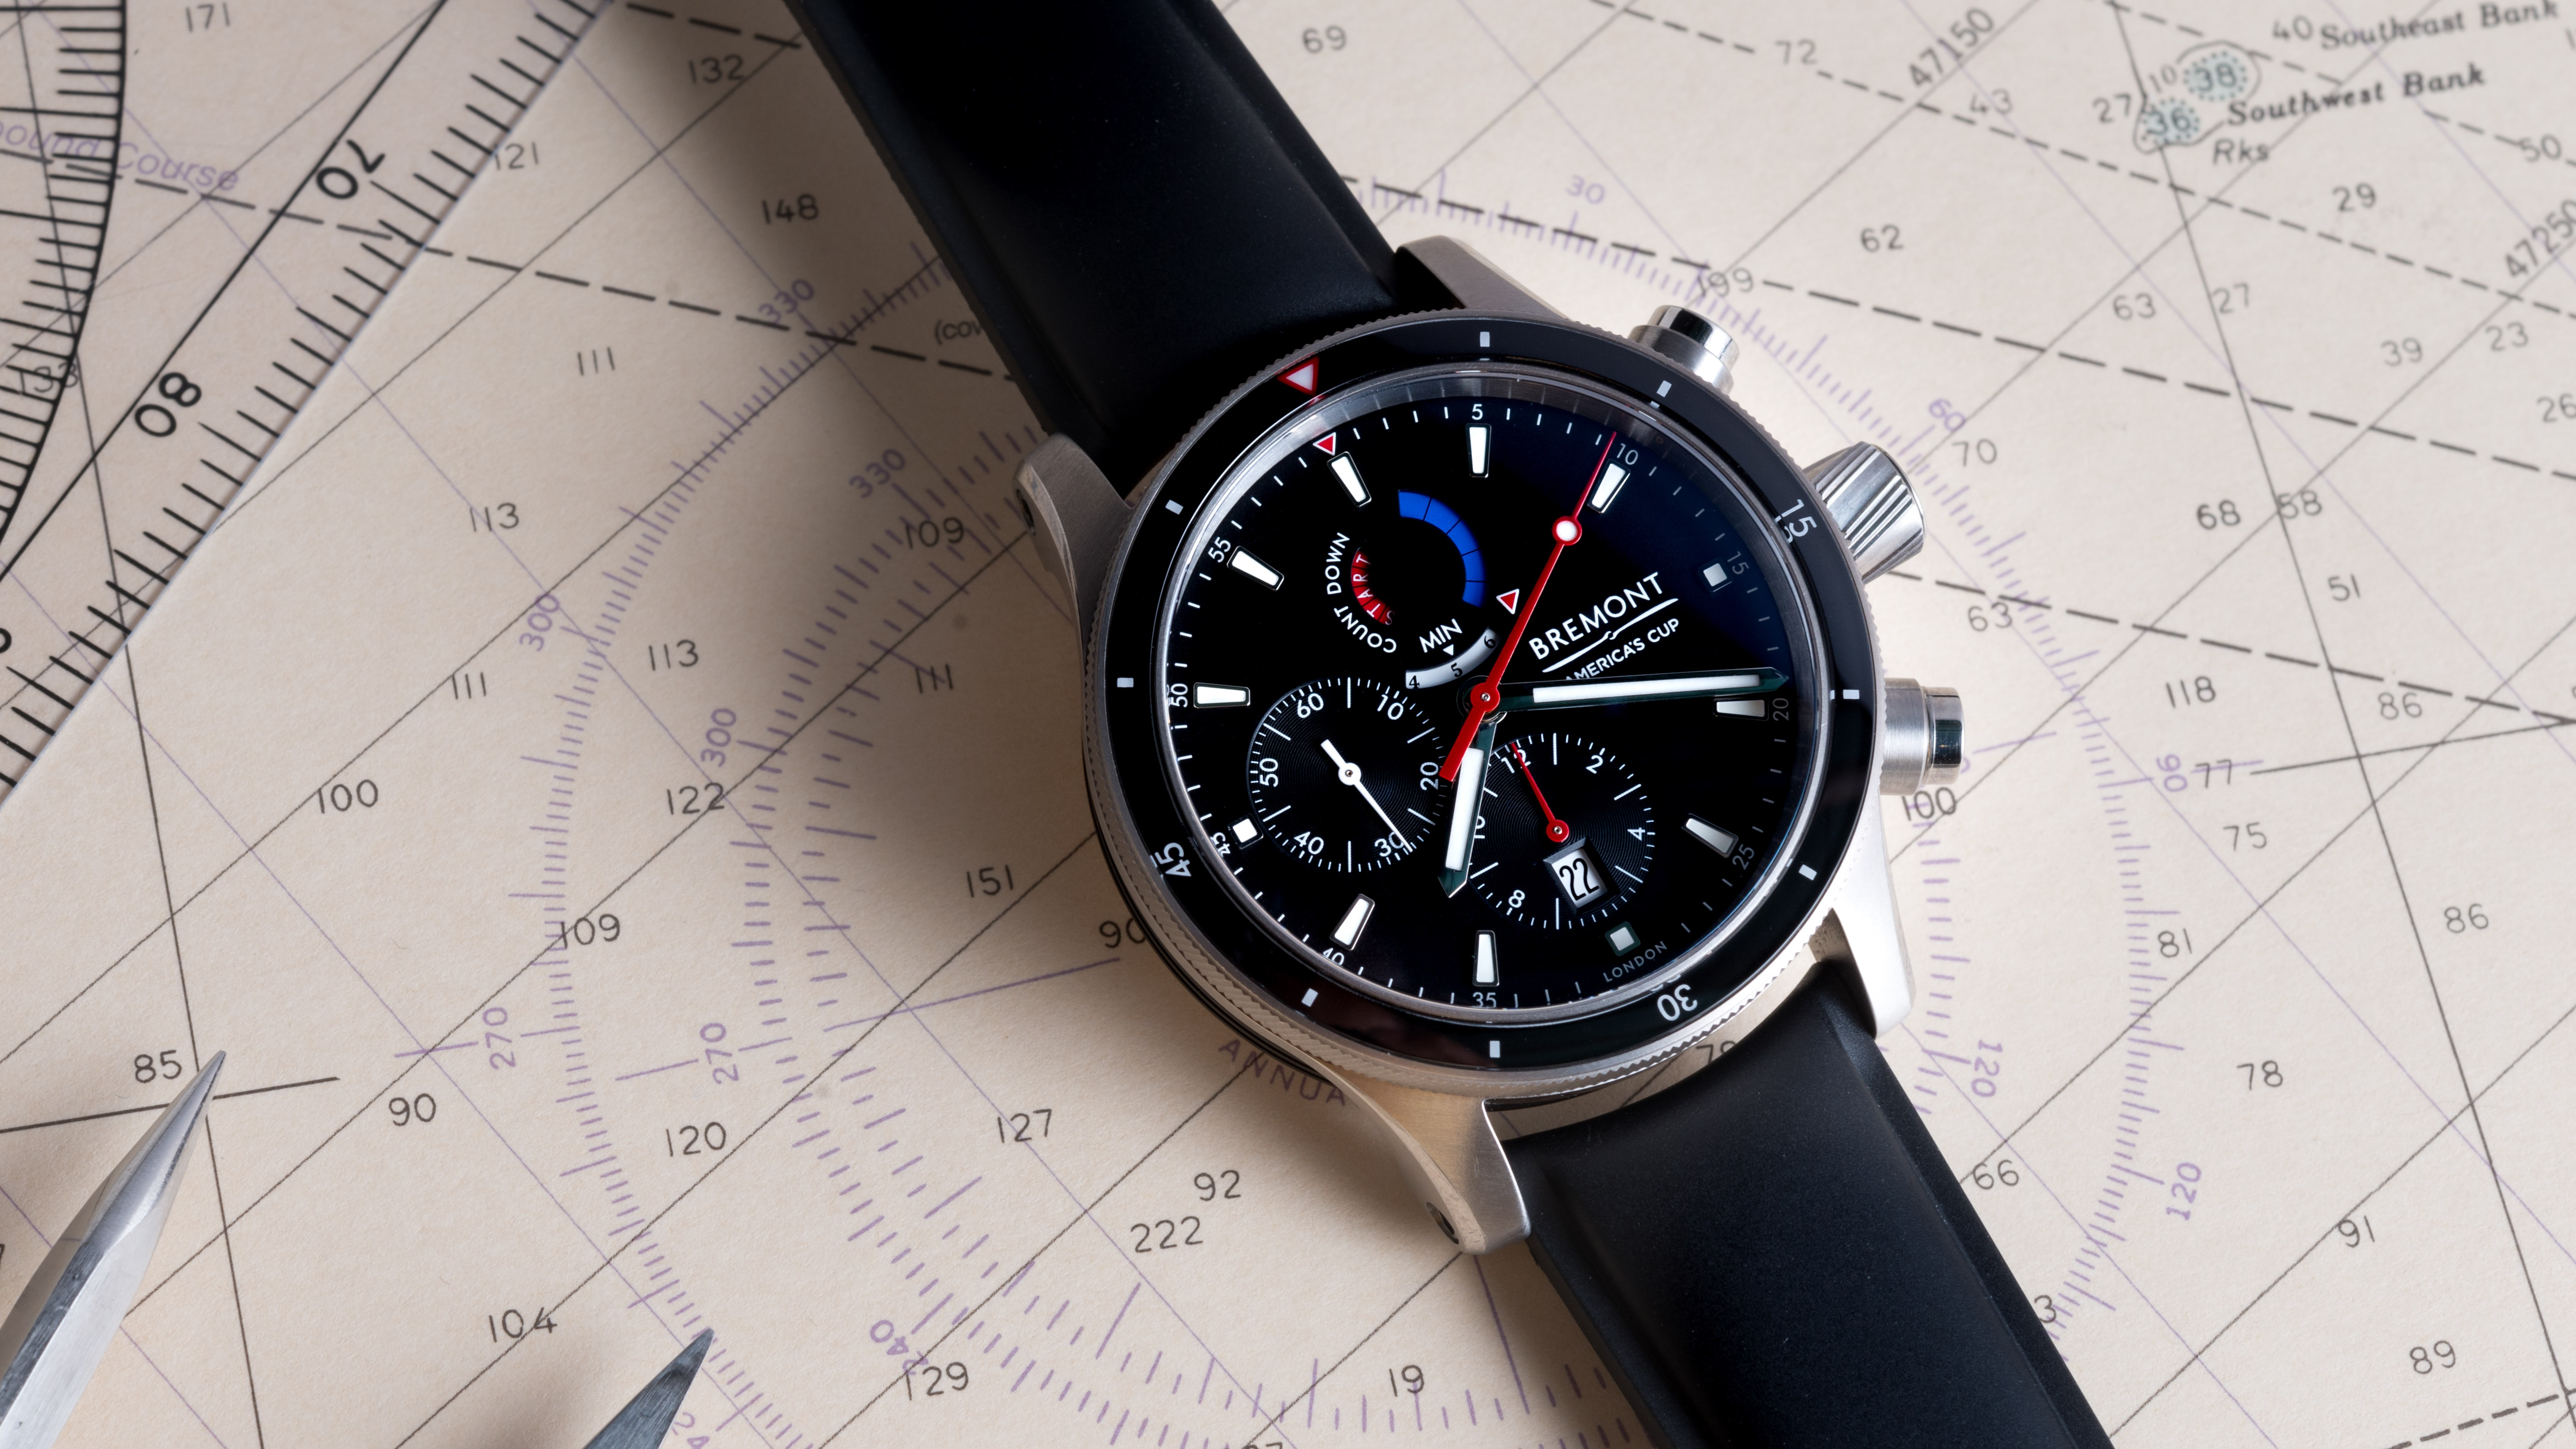 Bremont Unveils One Of The Best Looking Watches Of The Year Bremont Unveils One Of The Best Looking Watches Of The Year new images